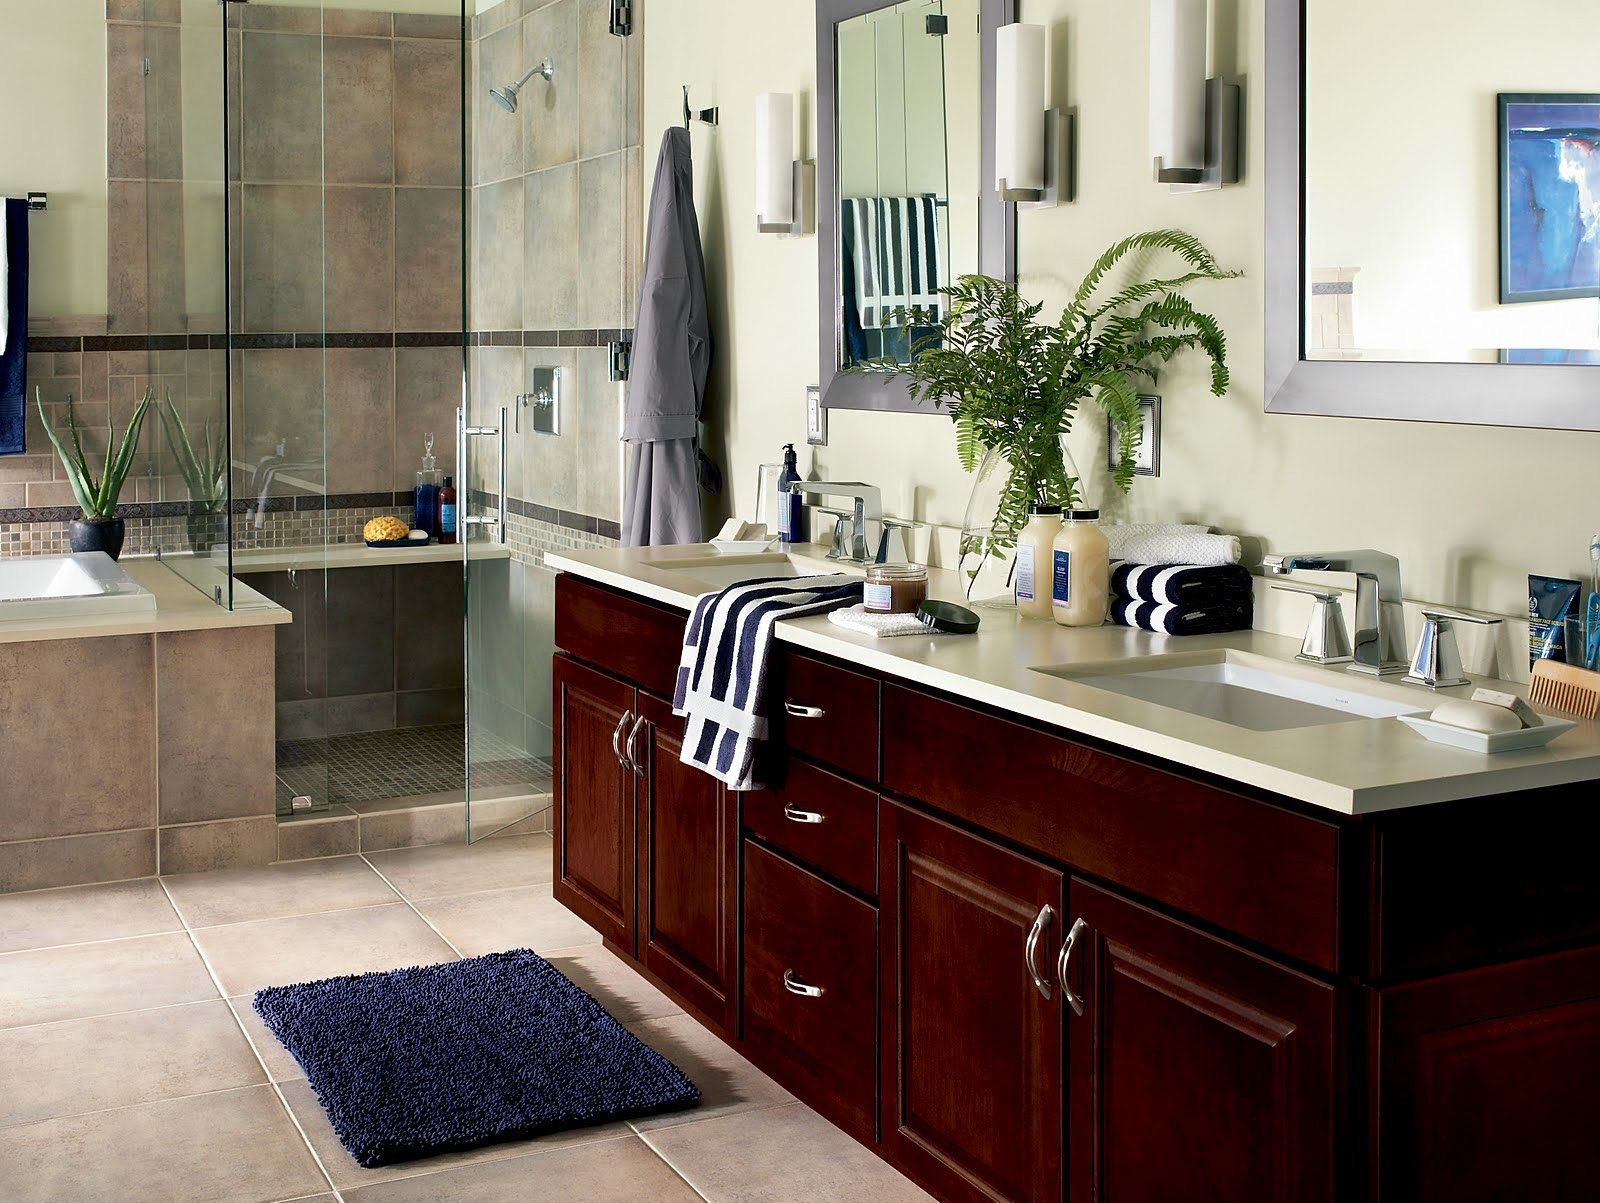 m & r kitchen and bath remodeling - professional contractor